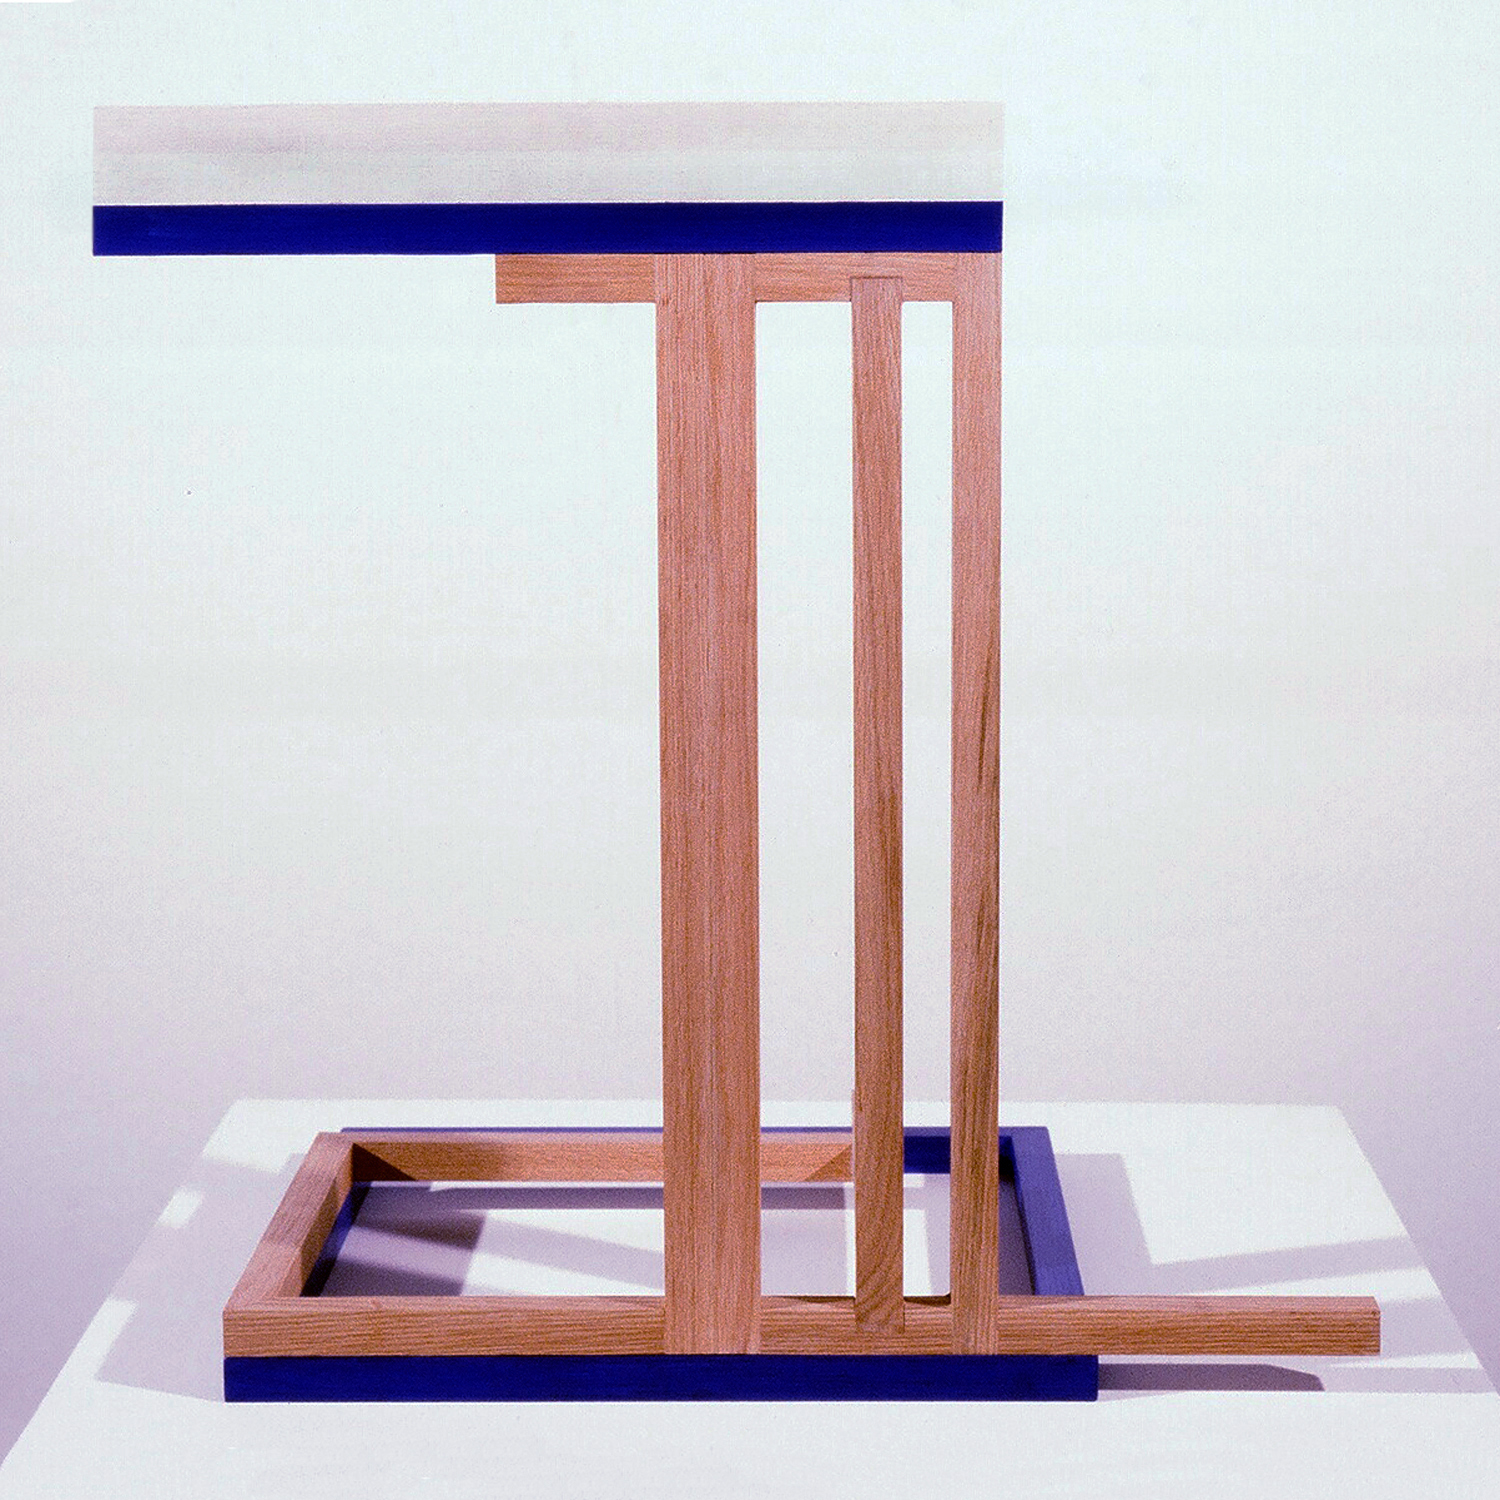 Rise and Fall,  1983, Oak wood, acrylic paint, 20 x 20 x 13.5 inches.